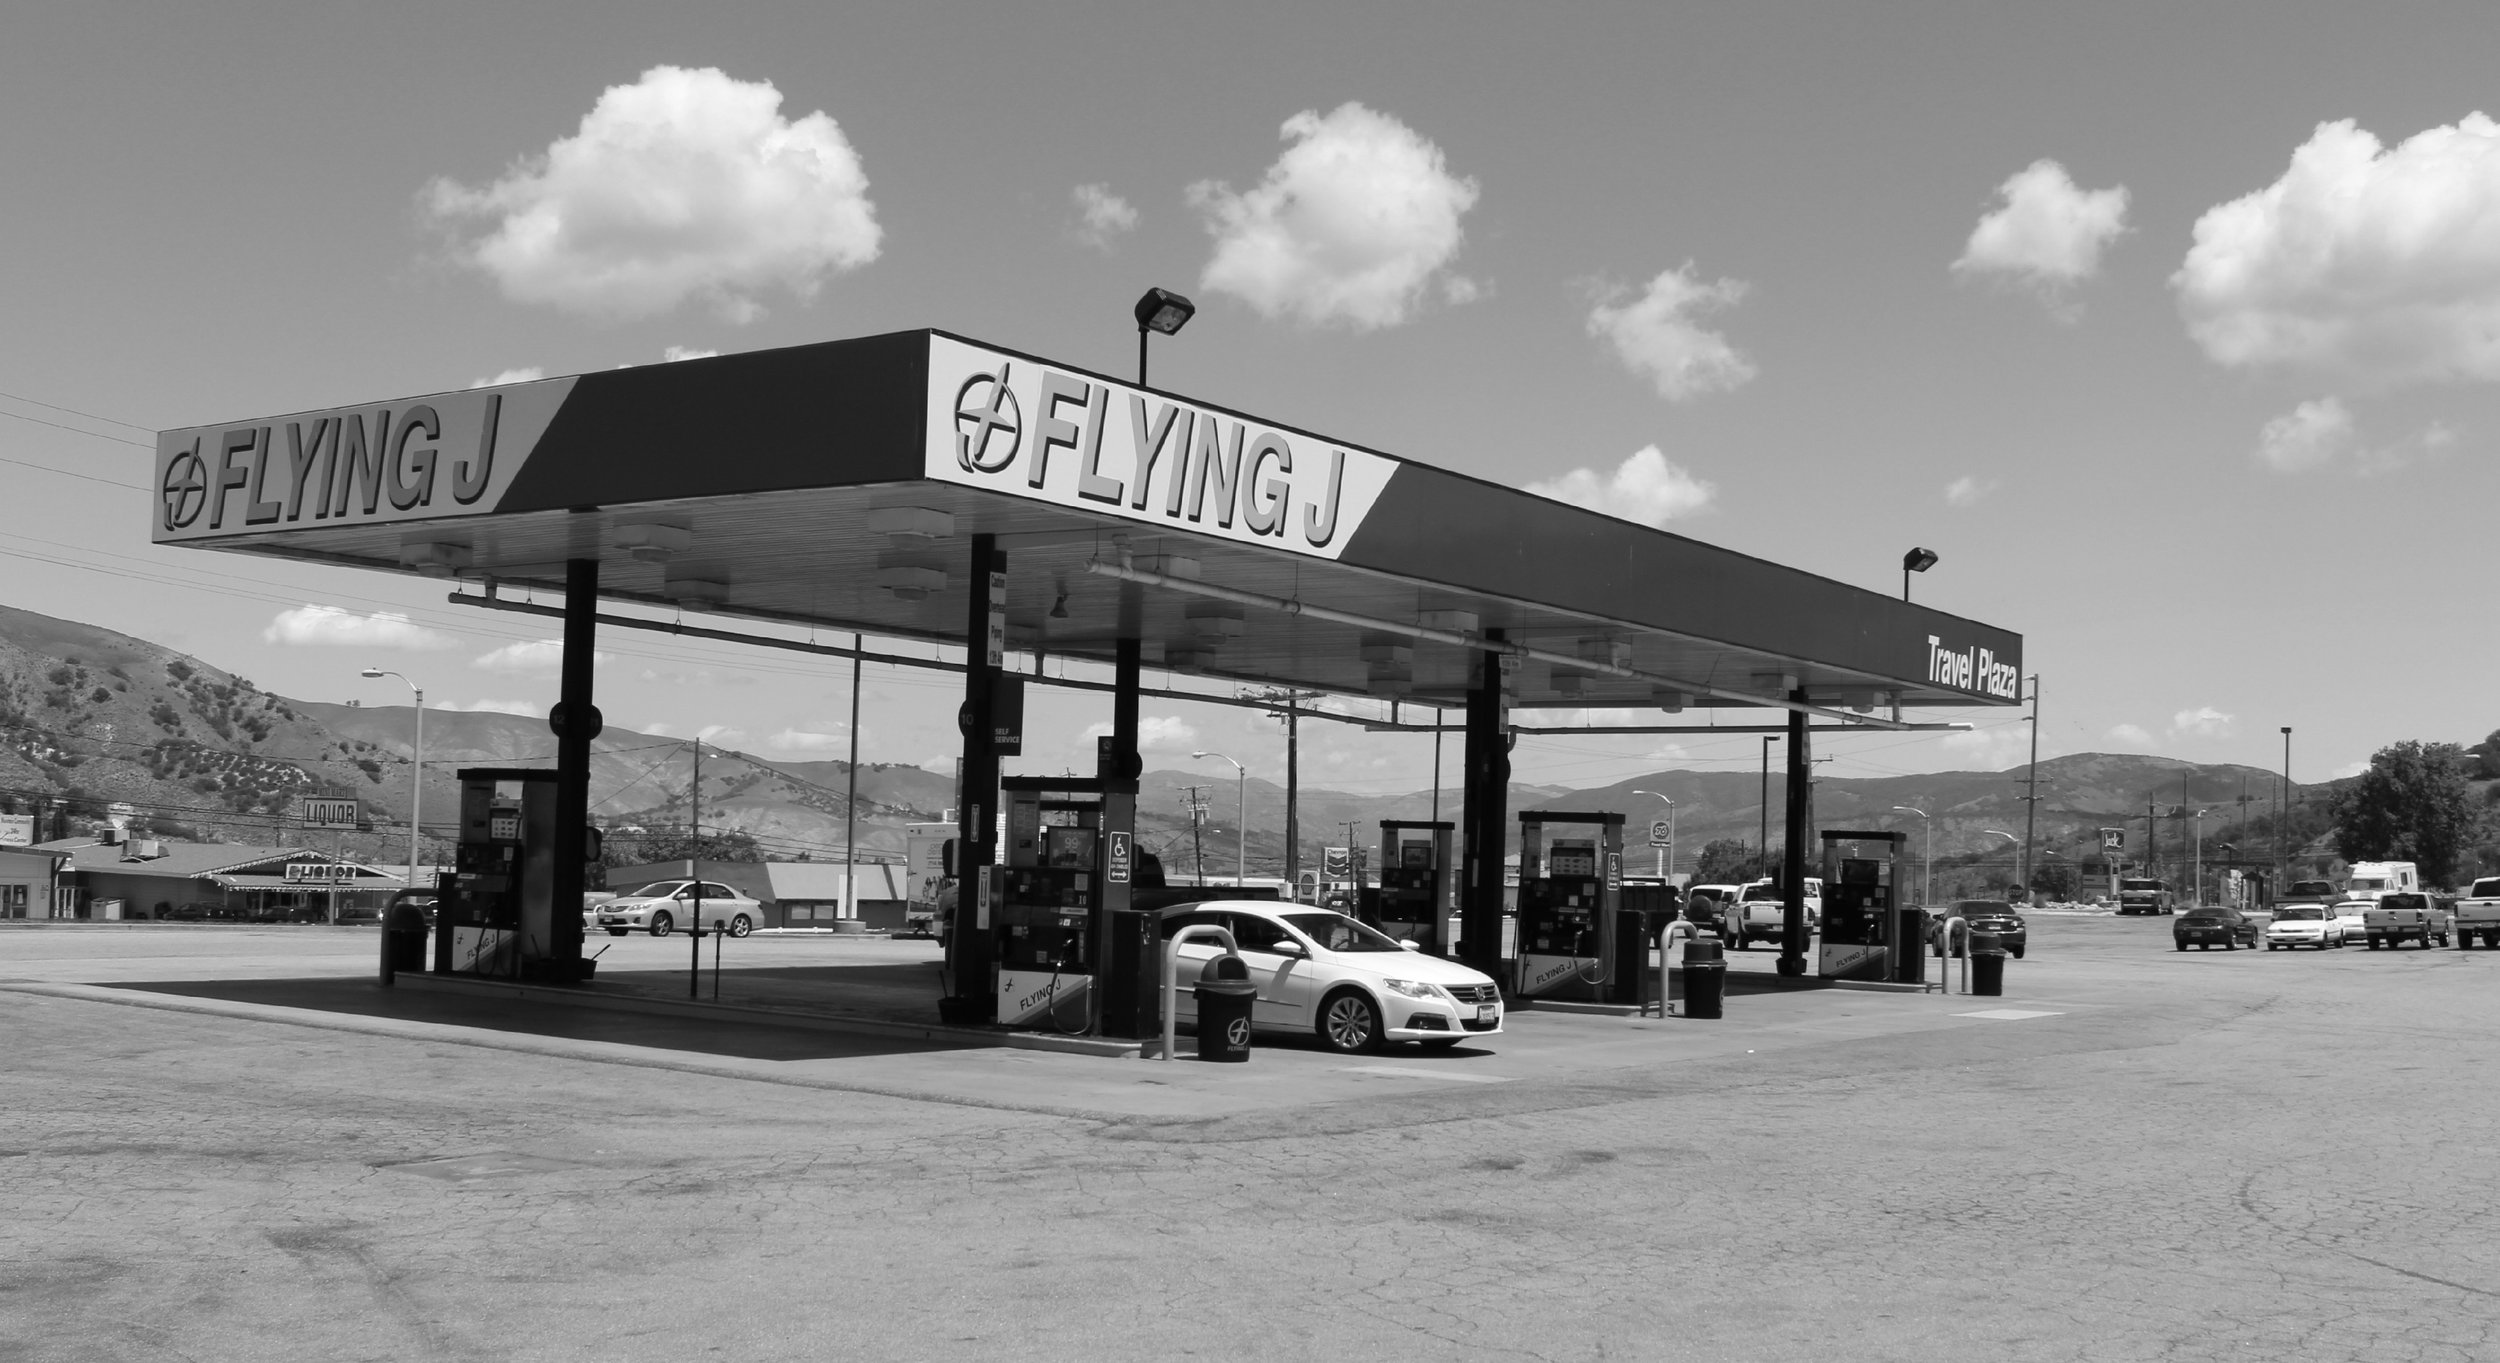 The Flying J Travel Center at the Frazier Park exit from Interstate 5 is a convenient and popular midway point to gas up and get refreshments between Bakersfield and the San Fernando Valley.  ©  Stephen H. Provost, 2014.